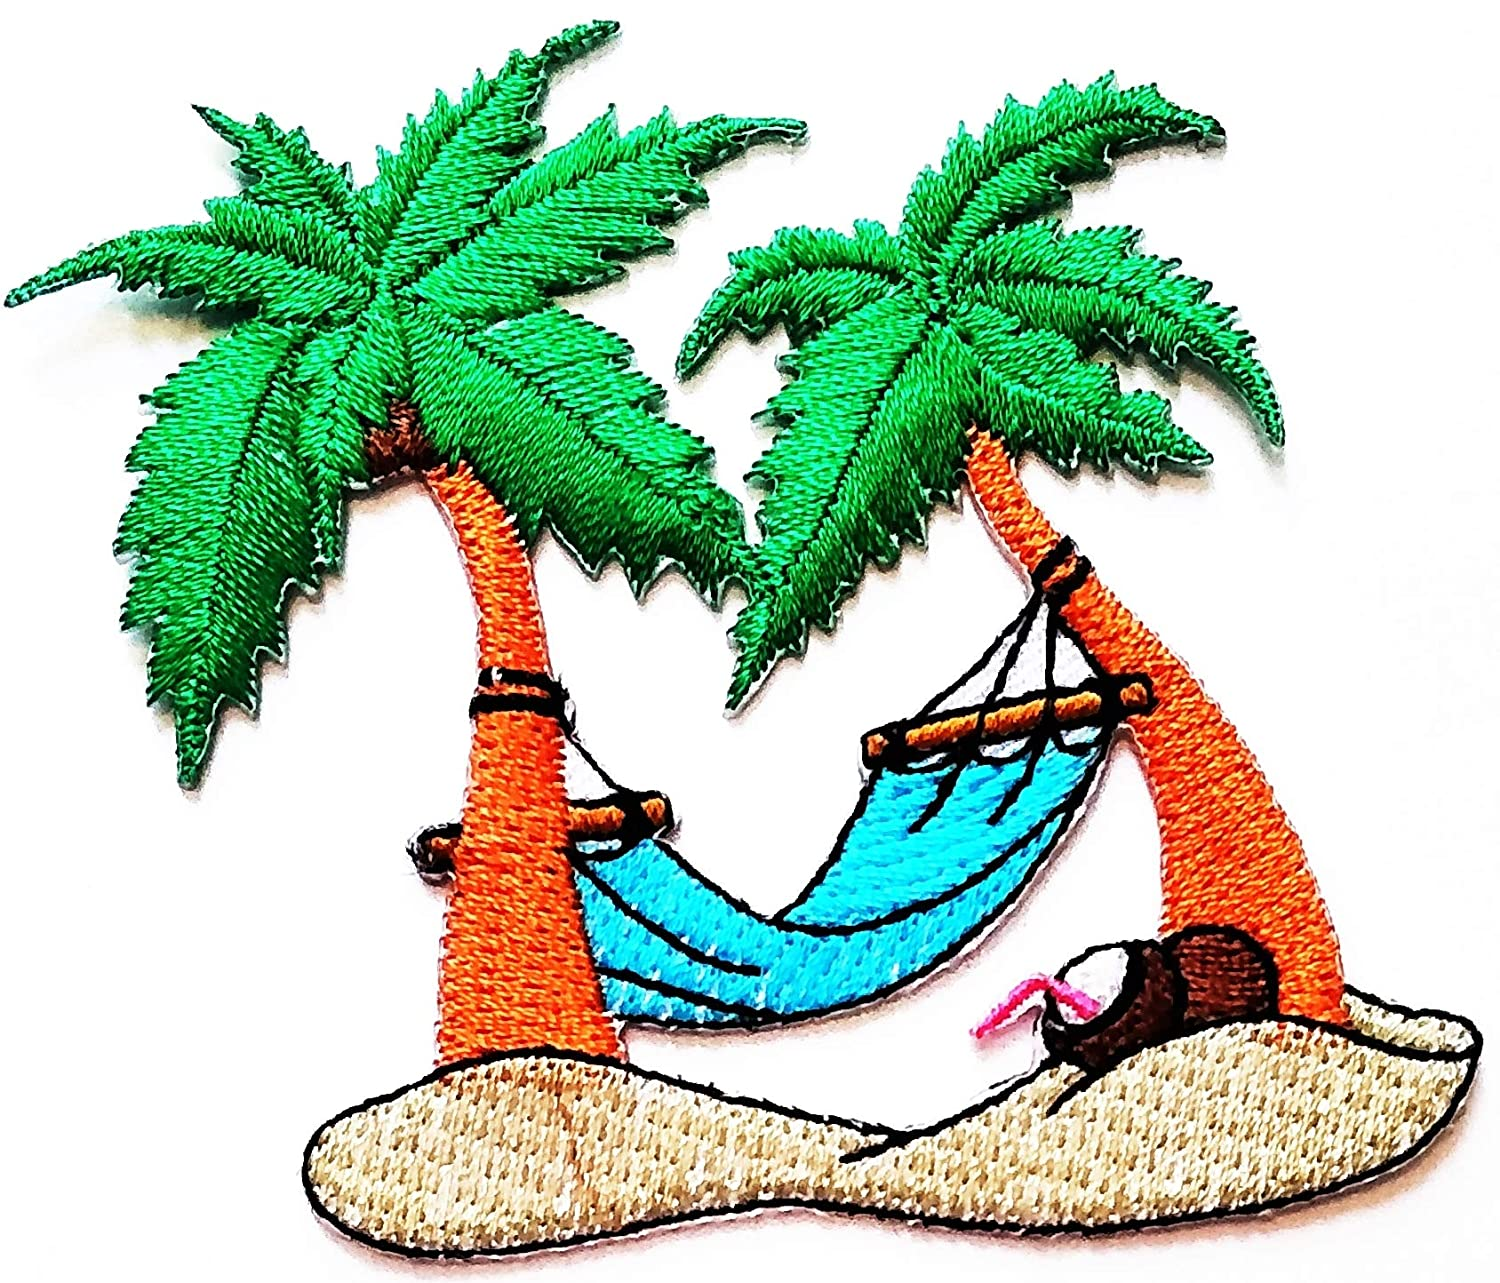 Nipitshop Patches Beautiful Coconut Palm Tree Island Summer Beach Hawaii Cartoon Patch Embroidered Iron On Patch for Clothes Backpacks T-Shirt Jeans Skirt Vests Scarf Hat Bag